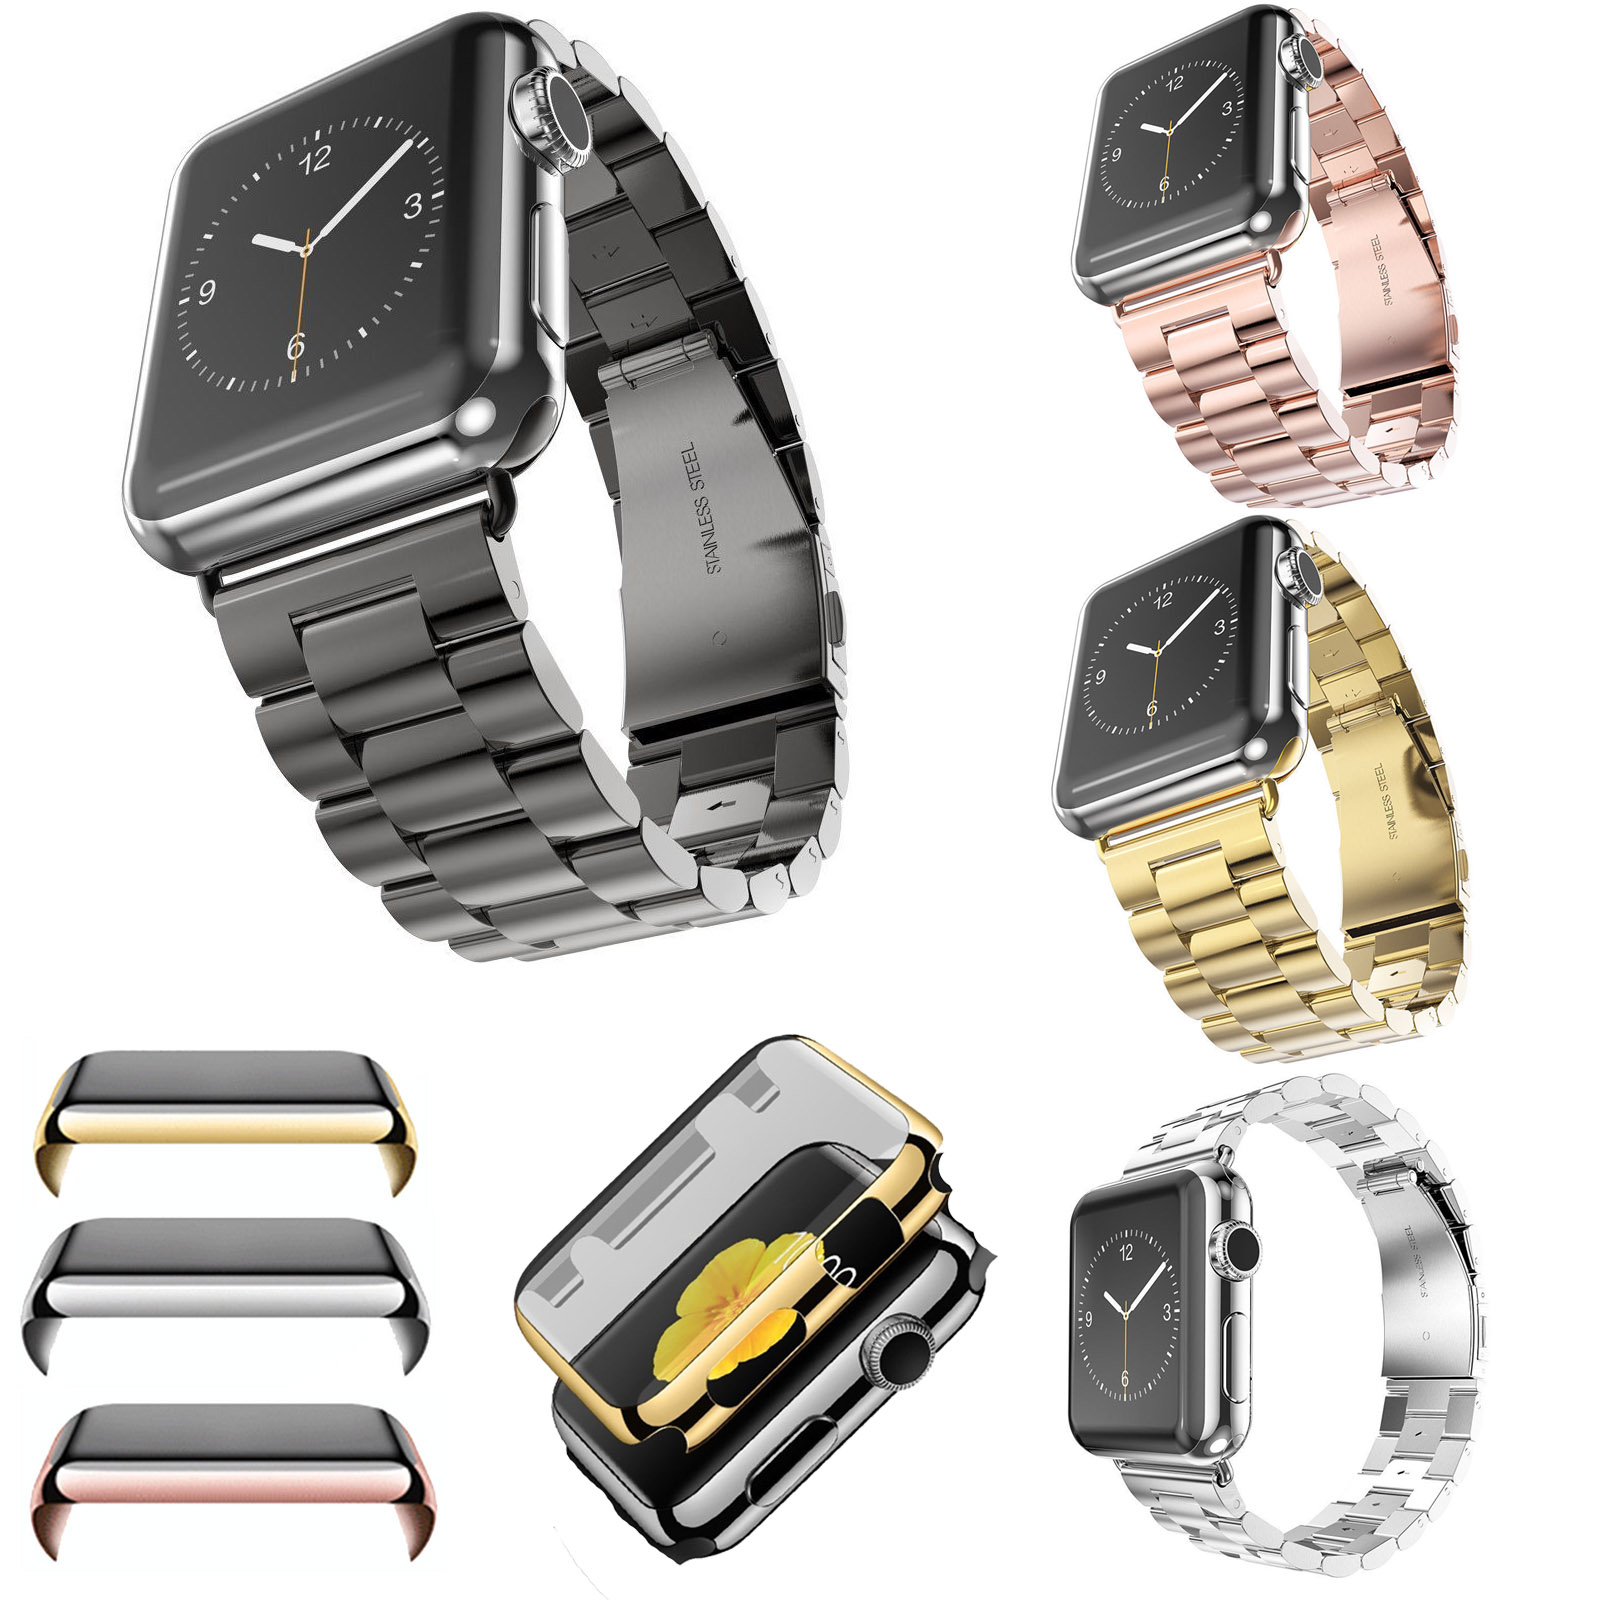 316l Stainless Steel Strap For Apple Watch Series 2 Screen Film Alumunium Sport 42mm Smartwatch Rosegold Protector Gold Plating Cover Case W Band Iwatch 2nd In Watchbands From Watches On